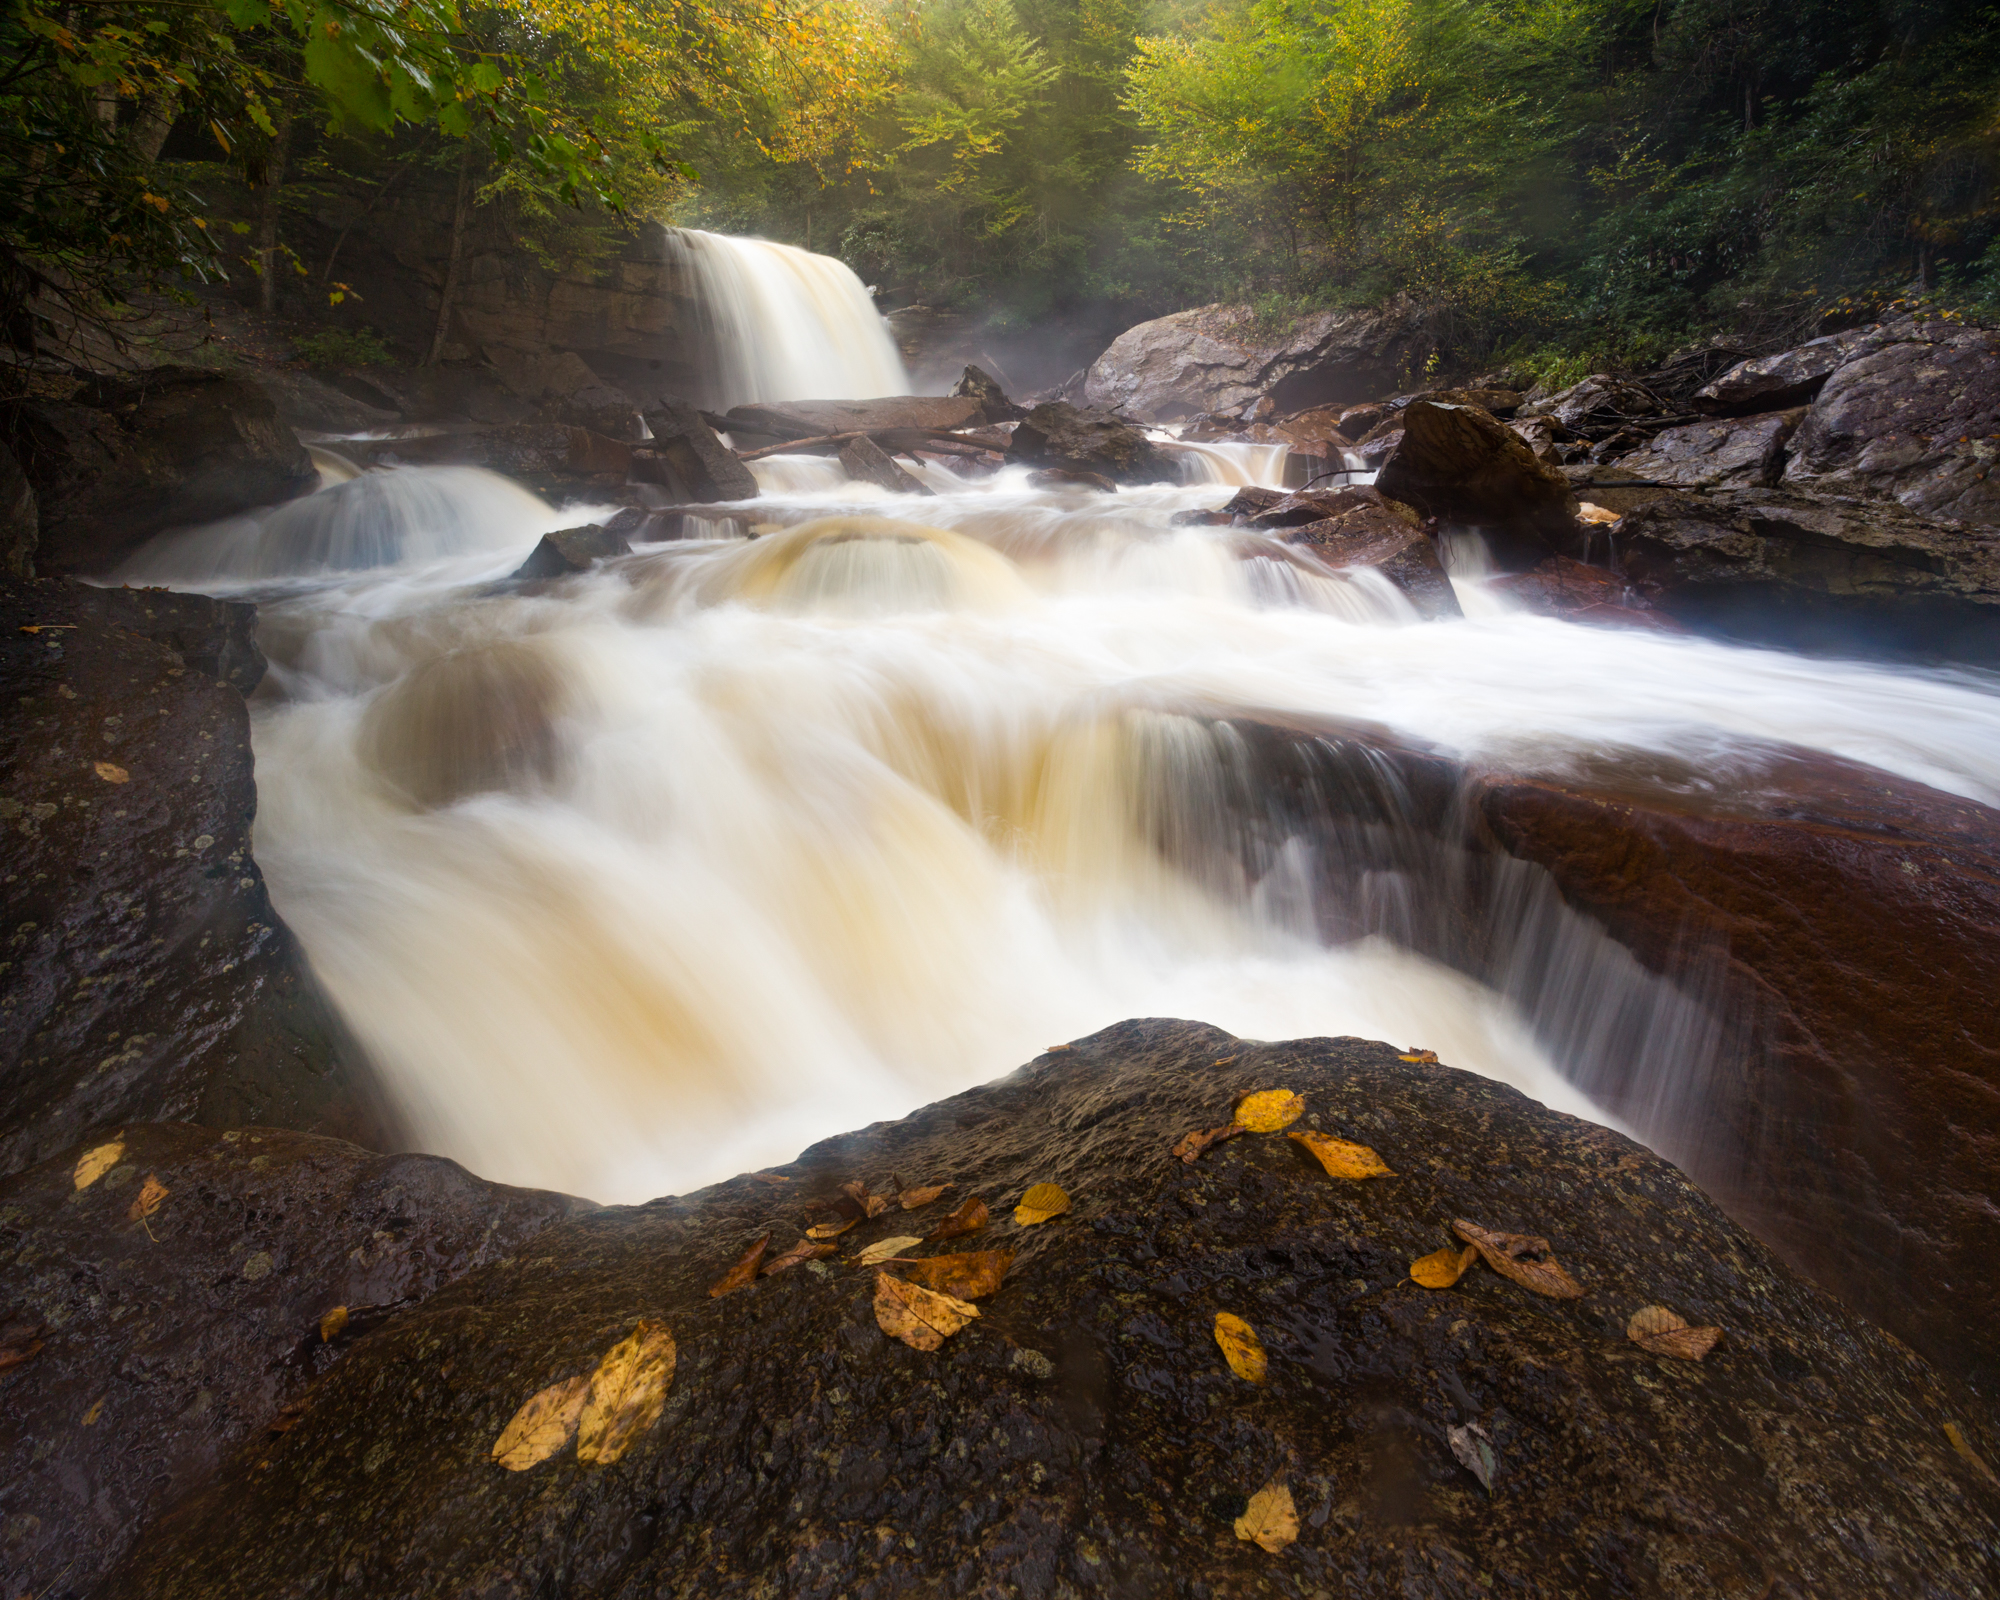 51. Douglas Falls, Monongahela National Forest, West Virginia